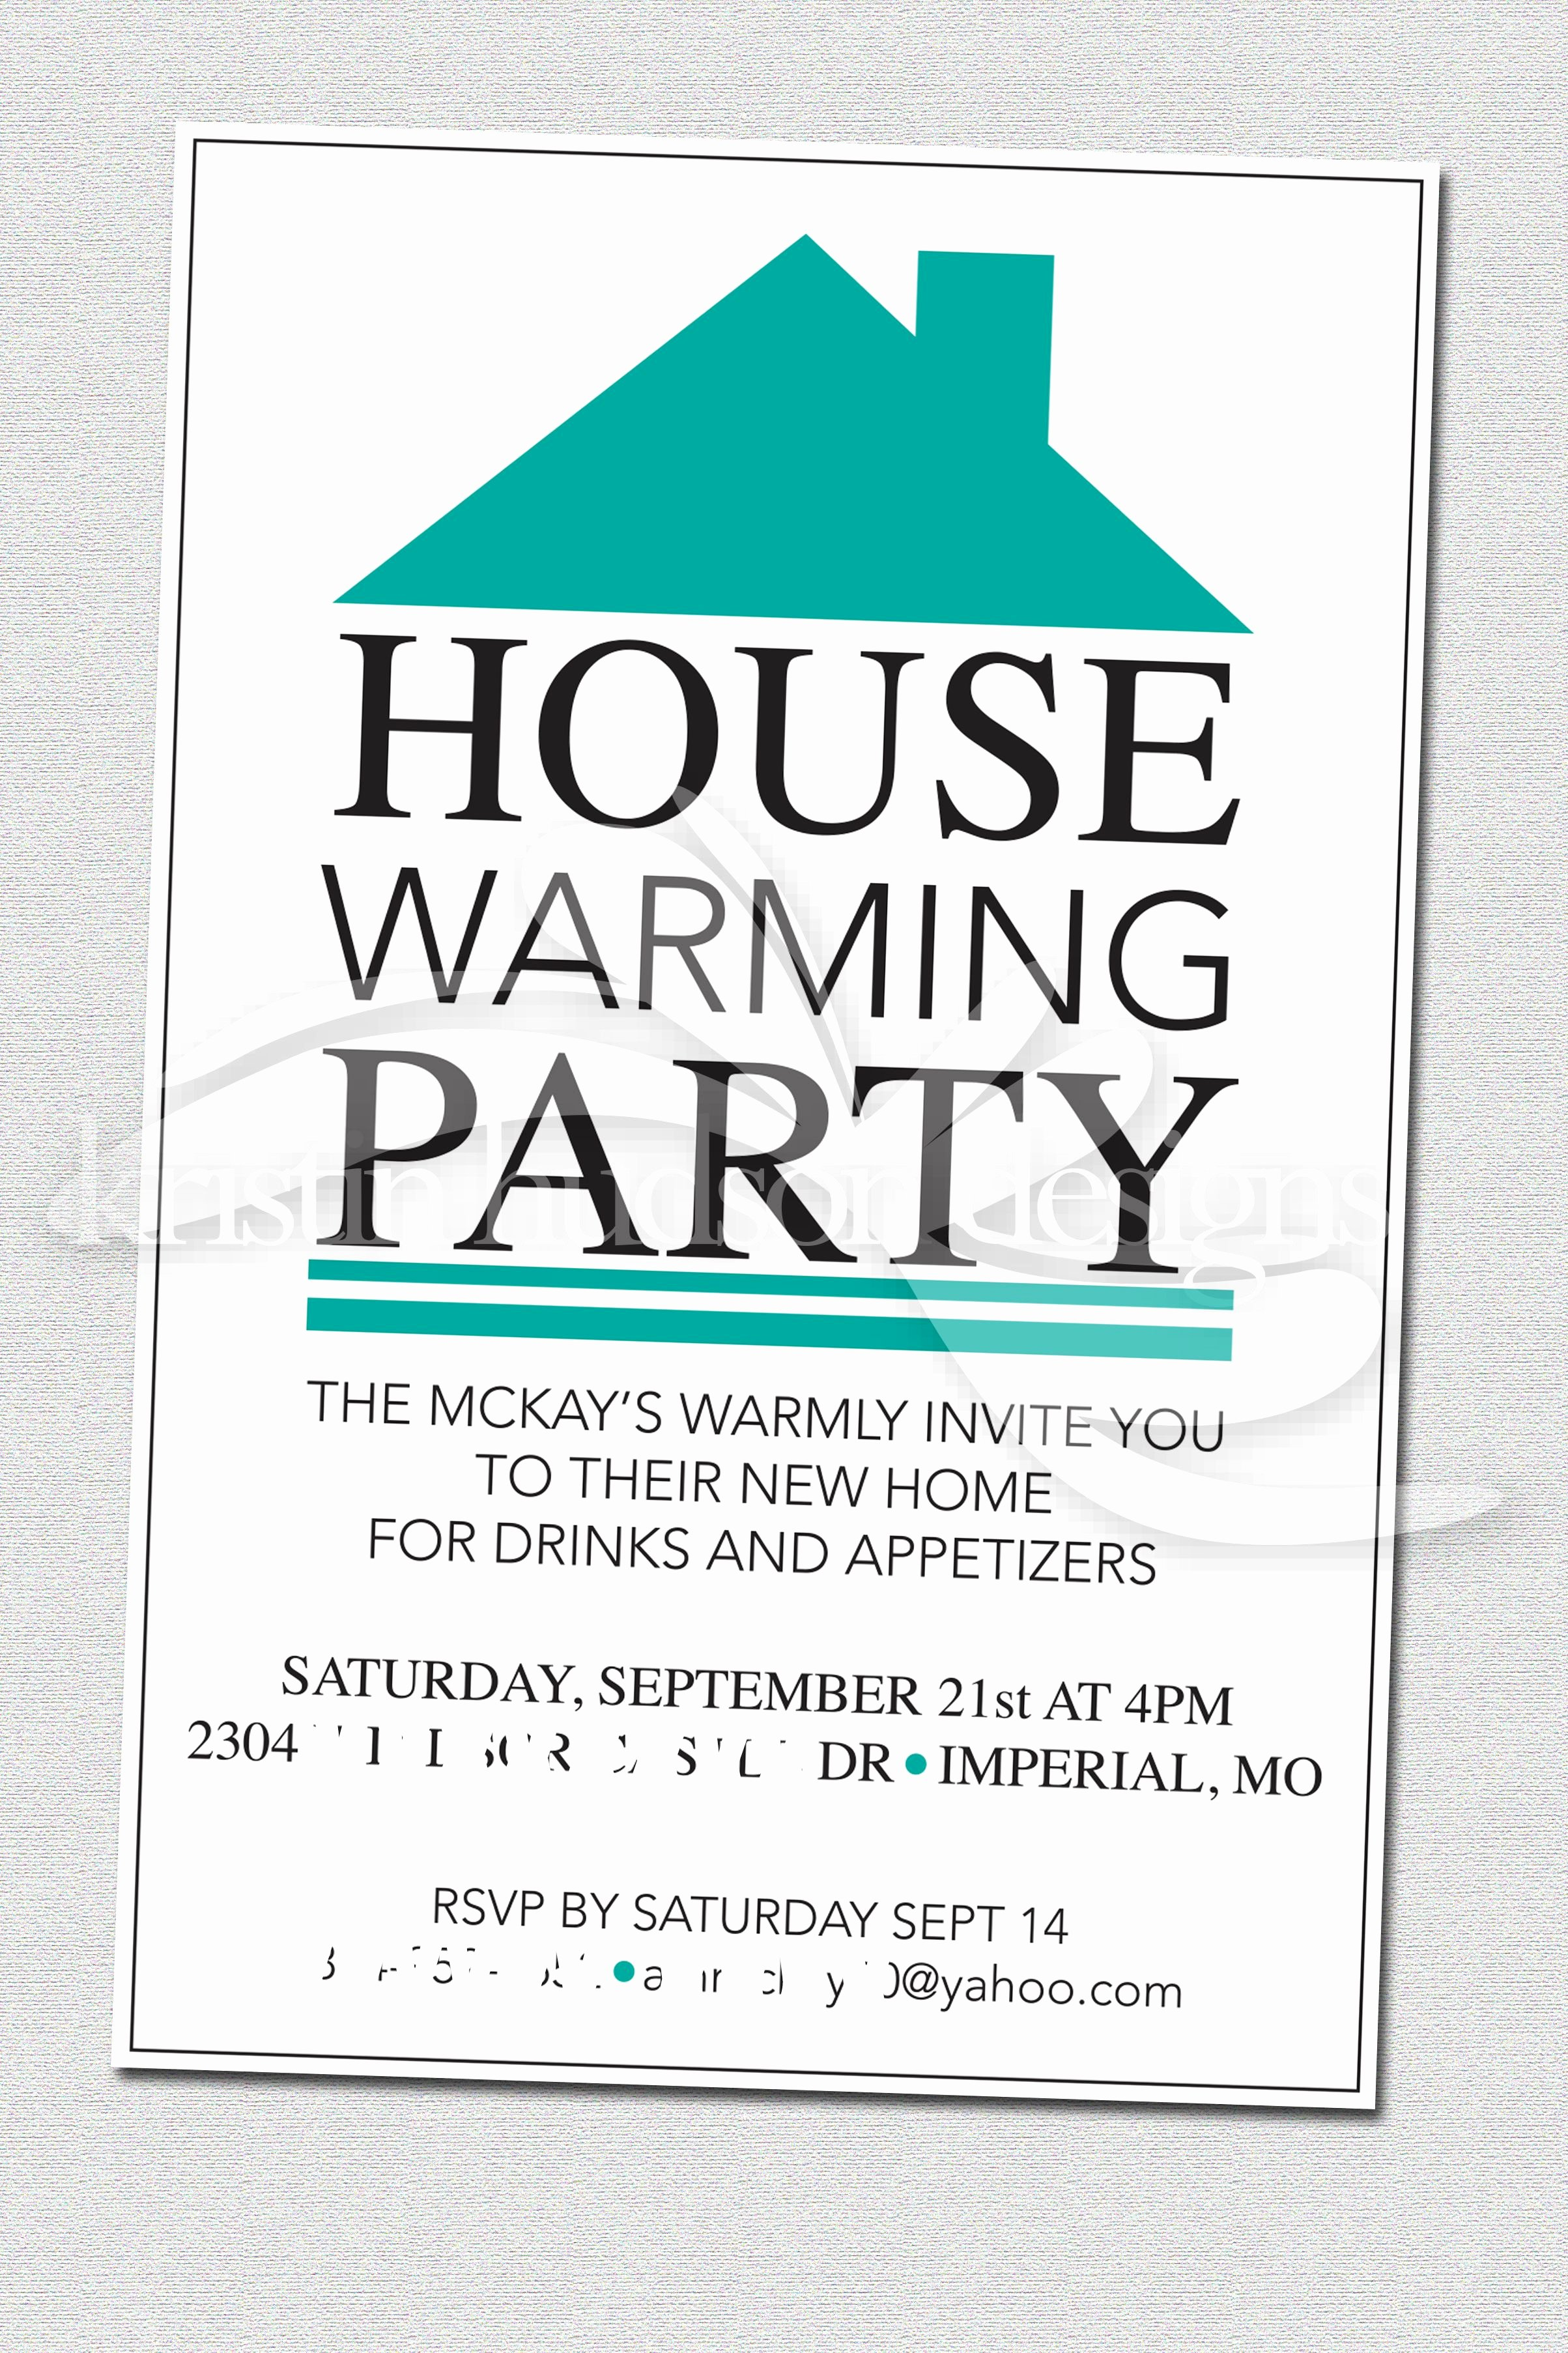 House Warming Party Invite